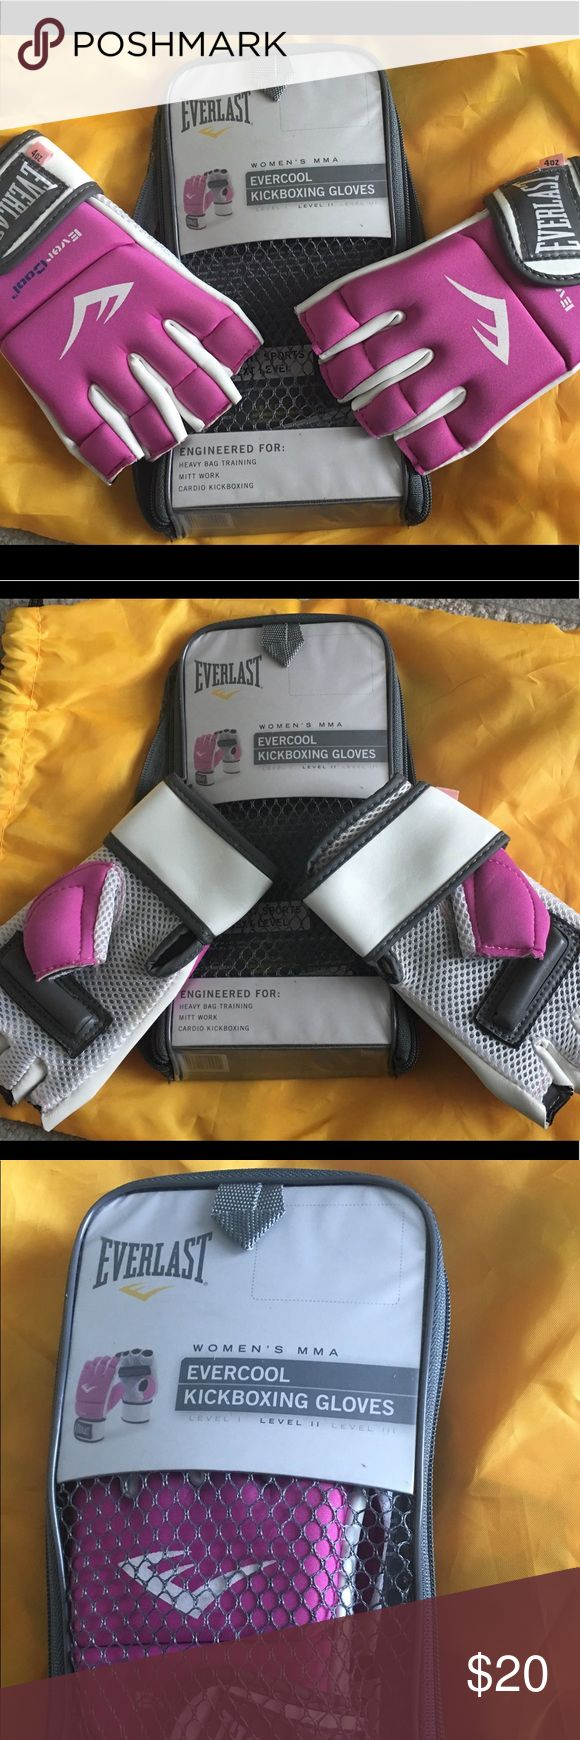 Pink kickboxing gloves Pink ladies kickboxing/  gloves. Used only a few times.  Cute but protective for getting that summer body. 🥊 Accessories